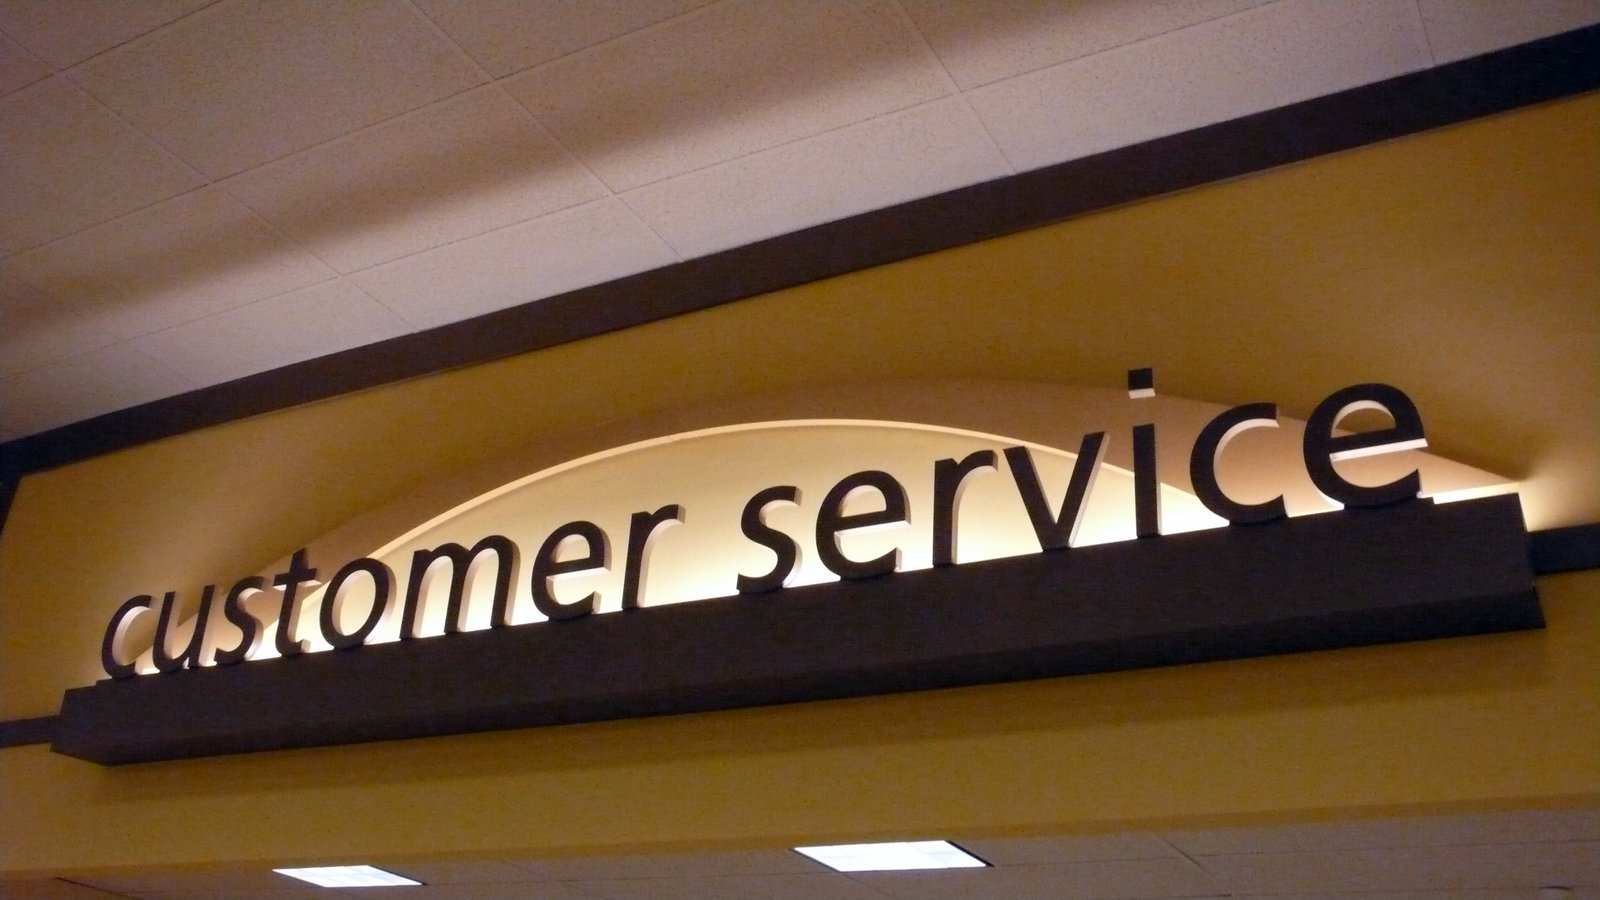 Do You Work In Customer Service?